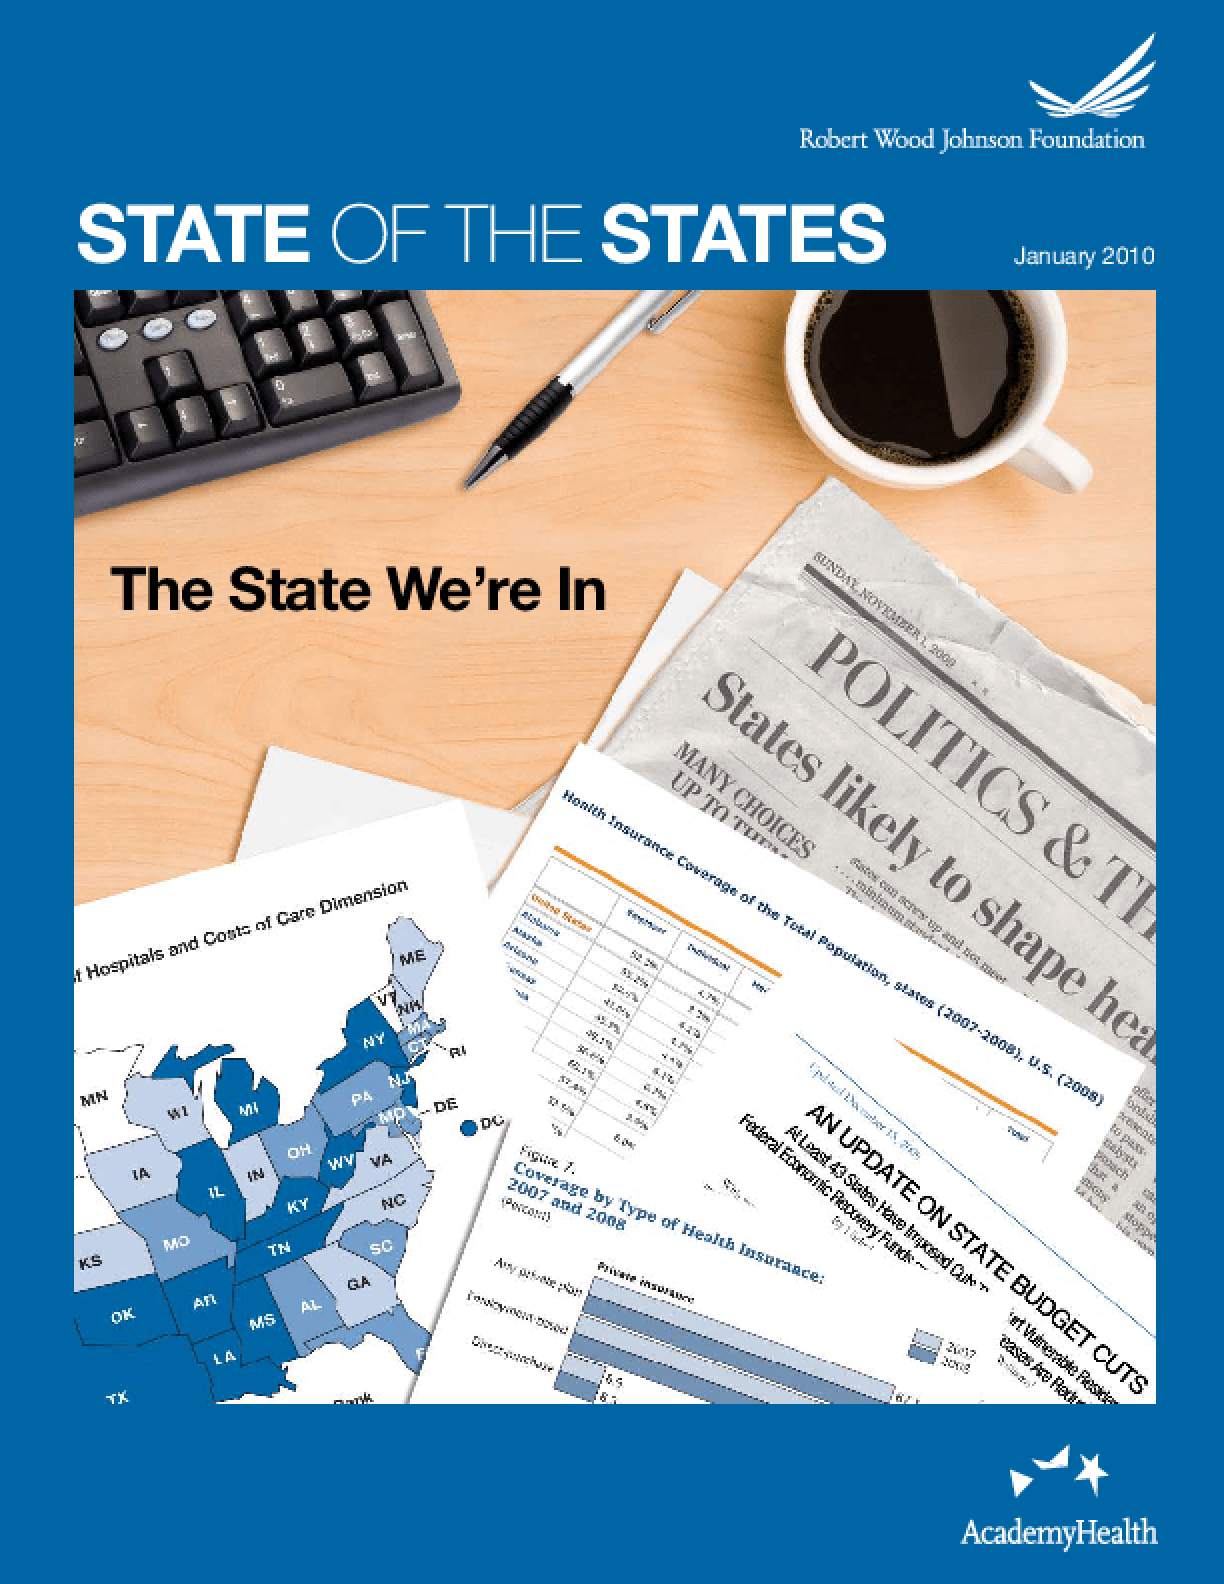 State of the States: The State We're In